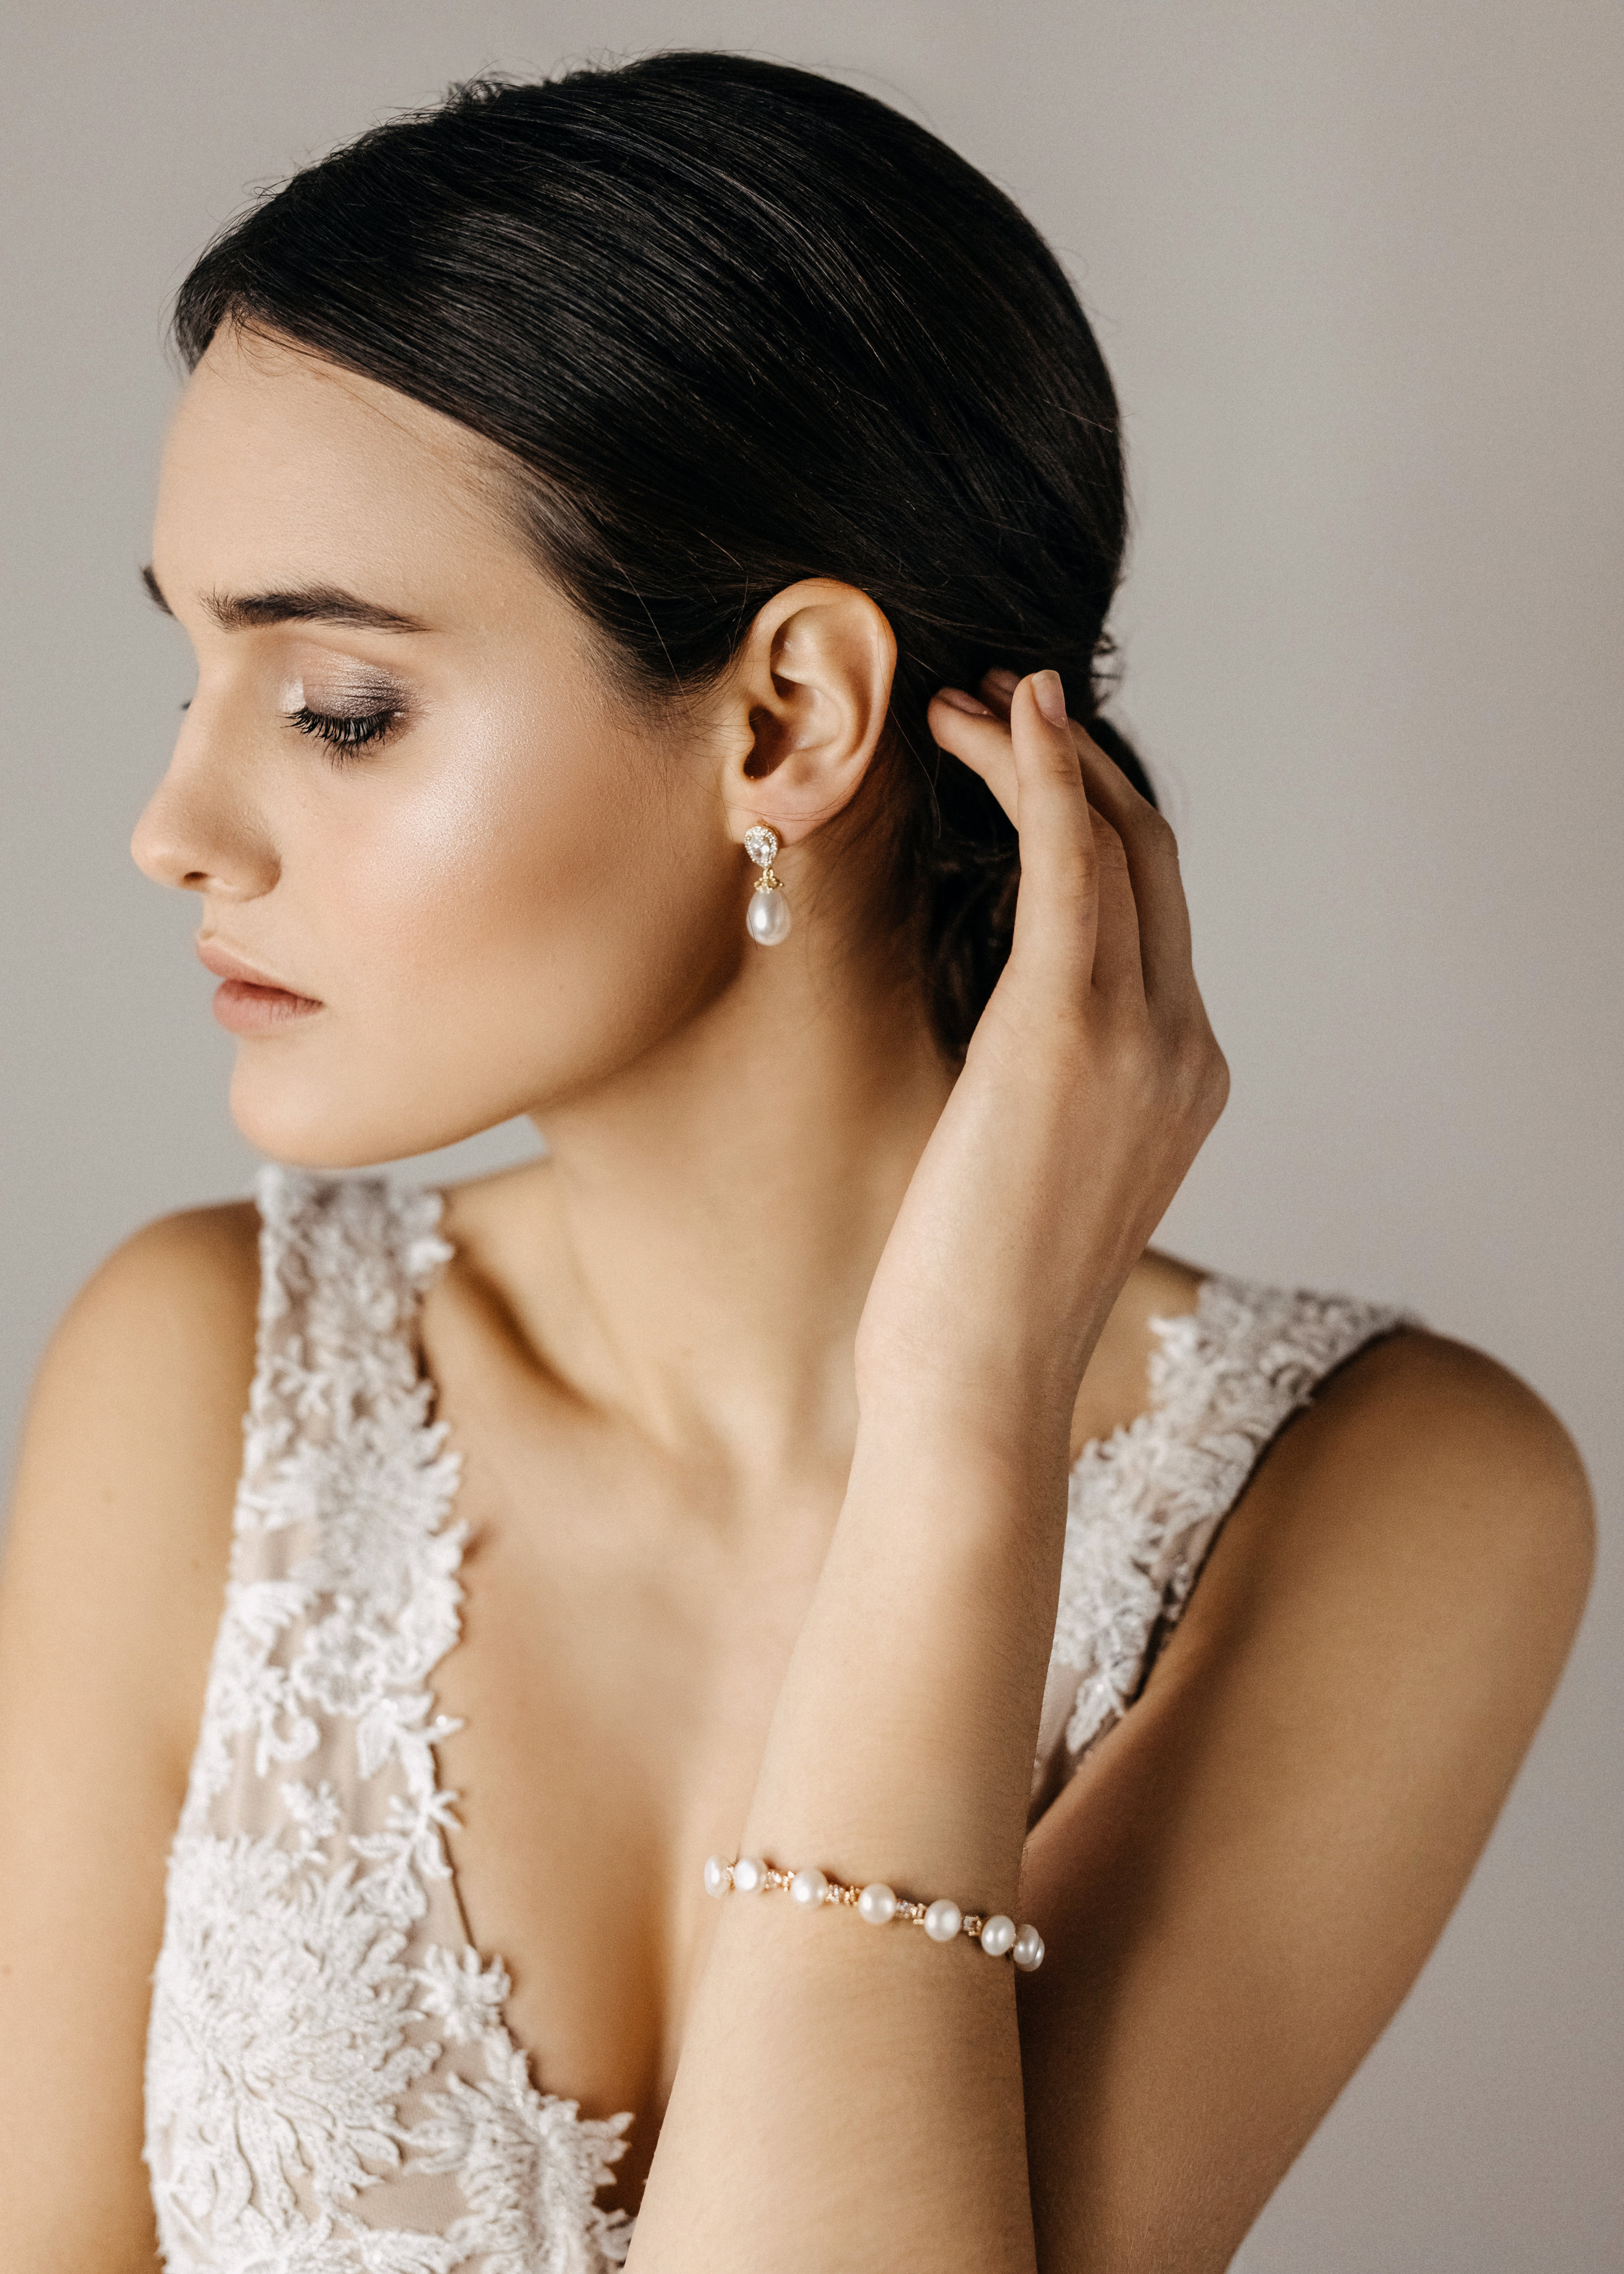 Find perfect Bridesmaid Jewellery - Earrings and Bracelet SetsUnique DesignPossibility to Rush OrdersFree Shipping WorldwideFast response on your questions